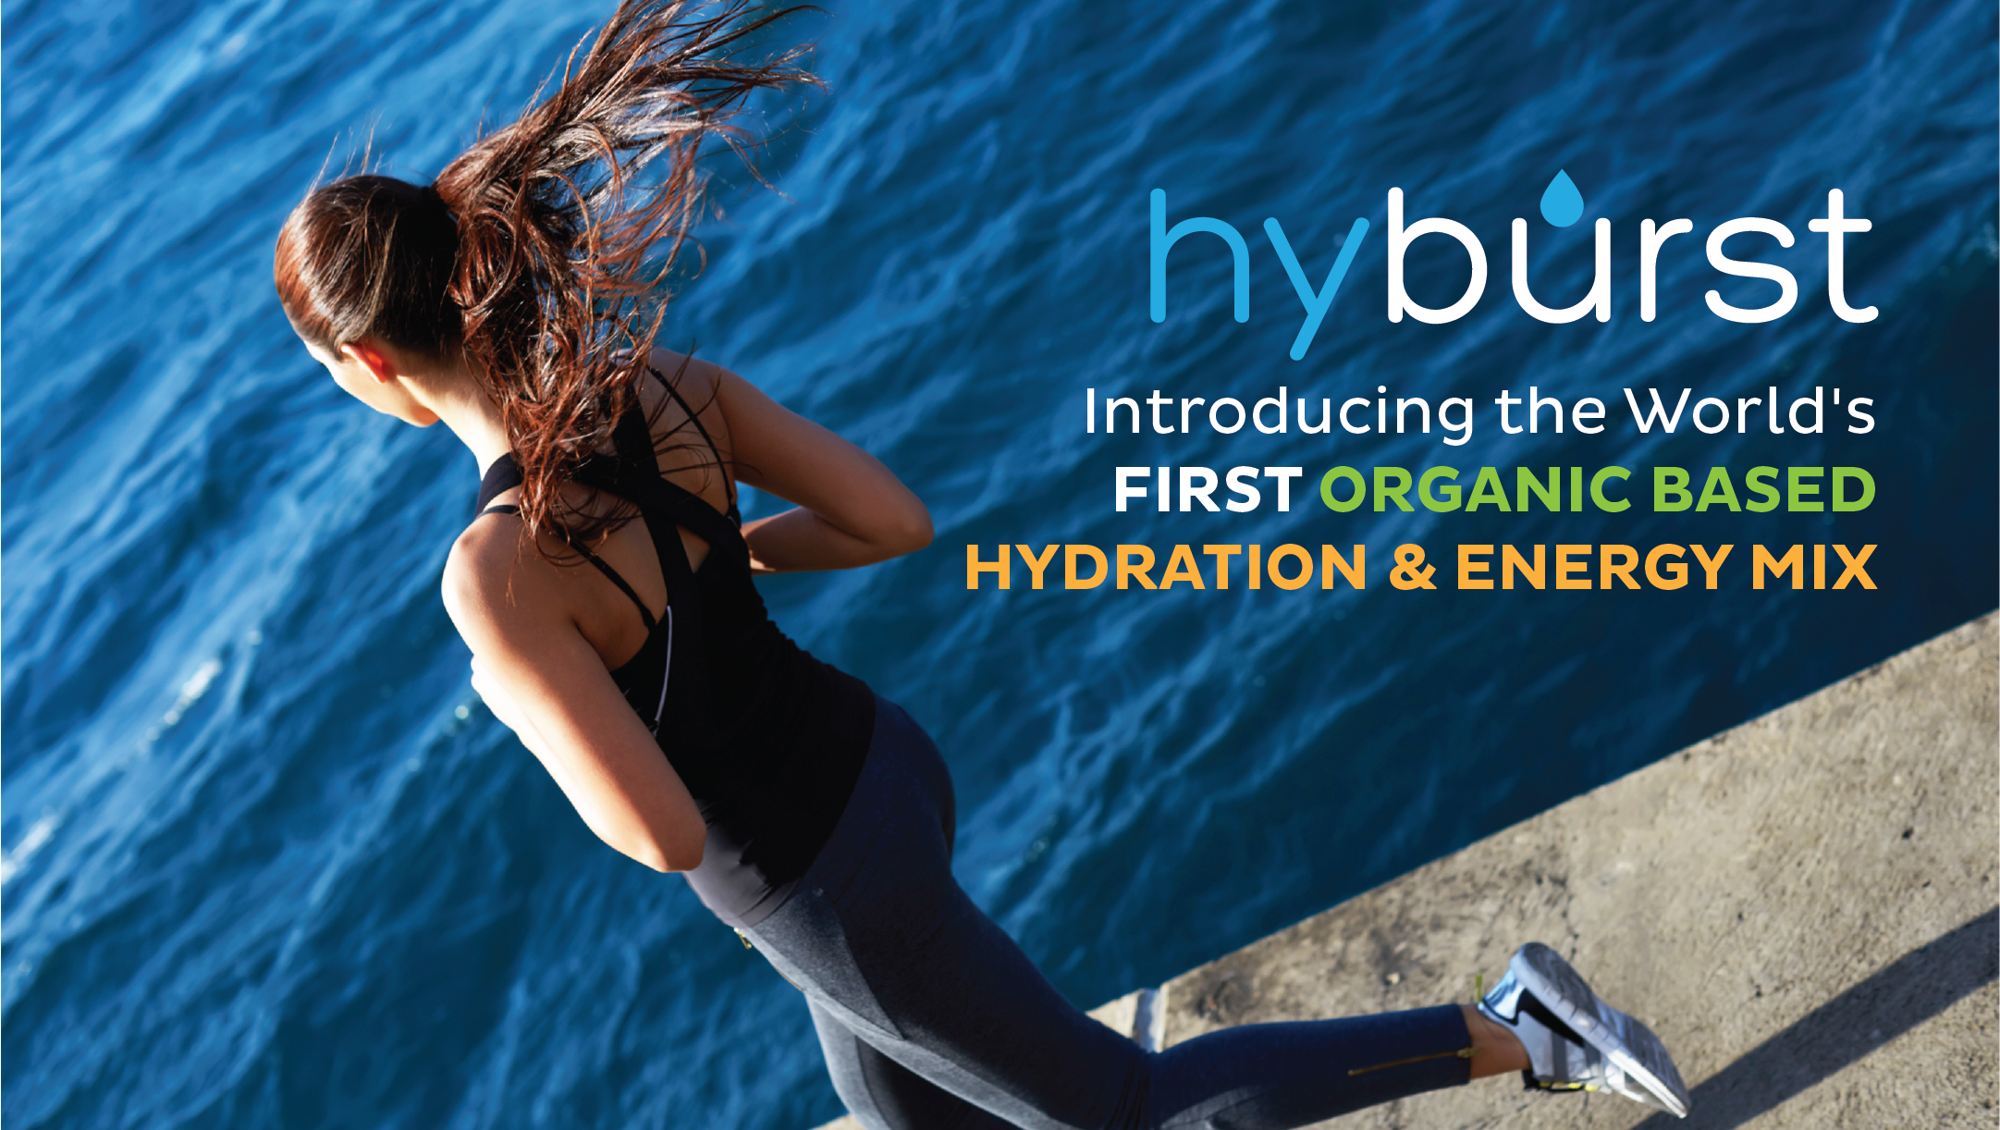 Hyburst - Worlds First Organic Based Hydration